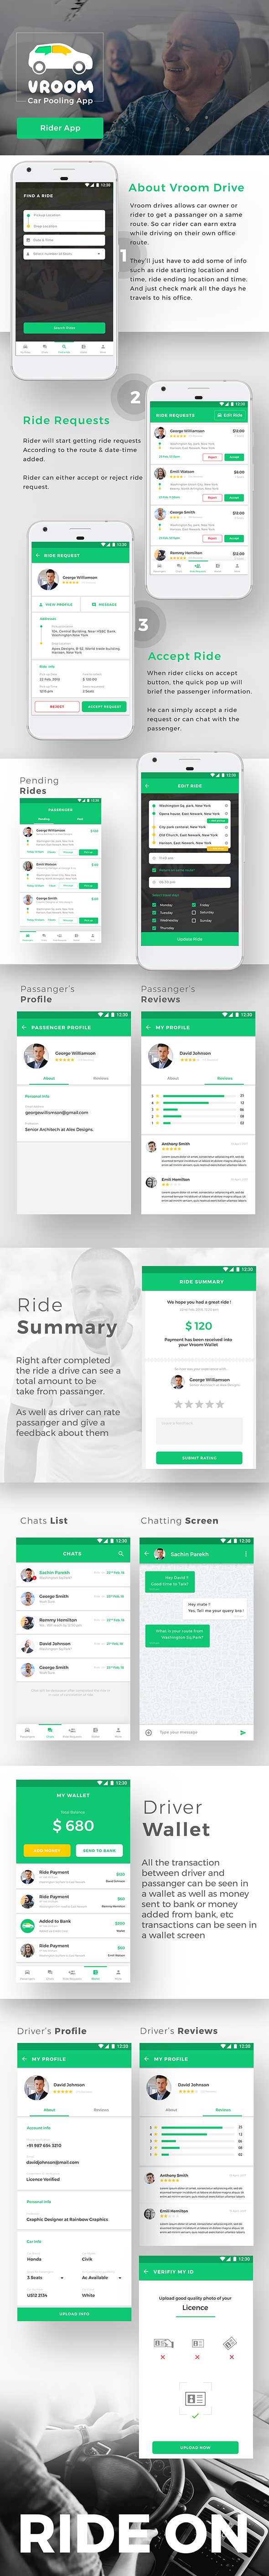 Car Pooling Android + iOS App | 2 Apps Rider + Driver | Flutter Template - 4